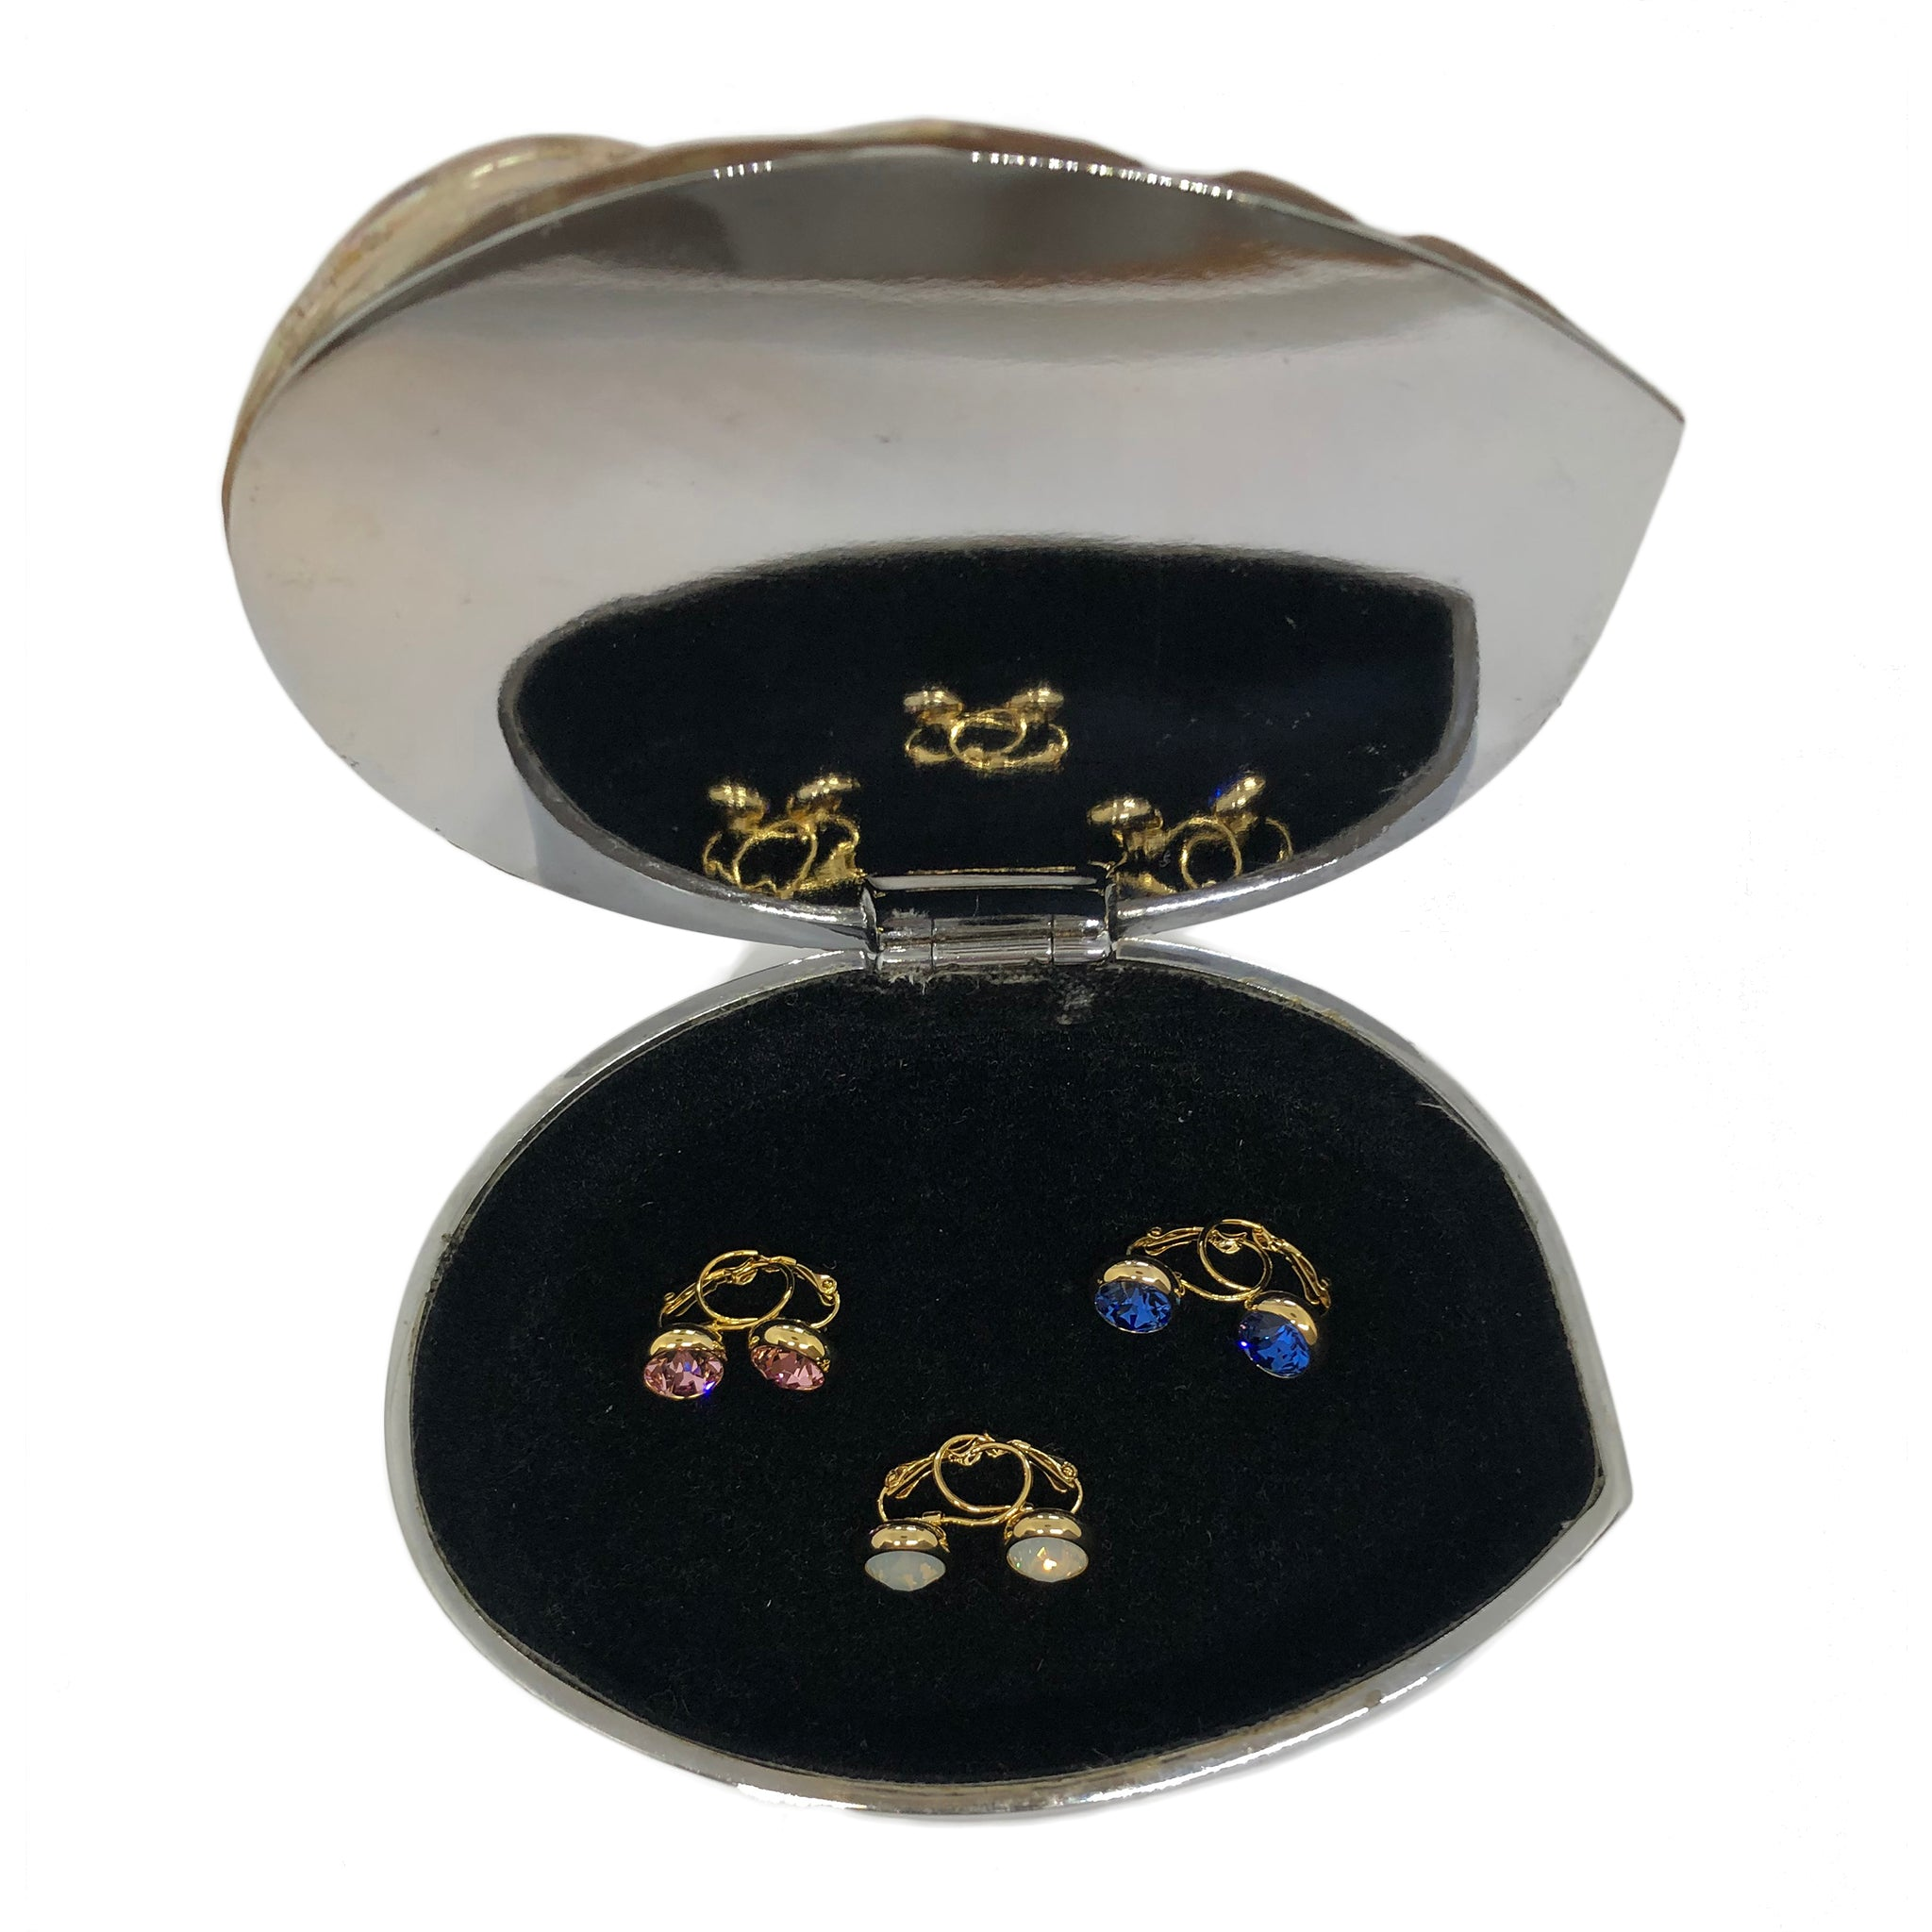 This beautiful polished shell forms the lid for the perfect sized jewellery box to place on your bedside table.  Silver plated with a black velvet lining, it will house your everyday jewellery perfectly so you always know where your rings are.    Measures L 15cm x W 12cm x H 7cm. Measurements may vary slightly depending on the depth of the shell.